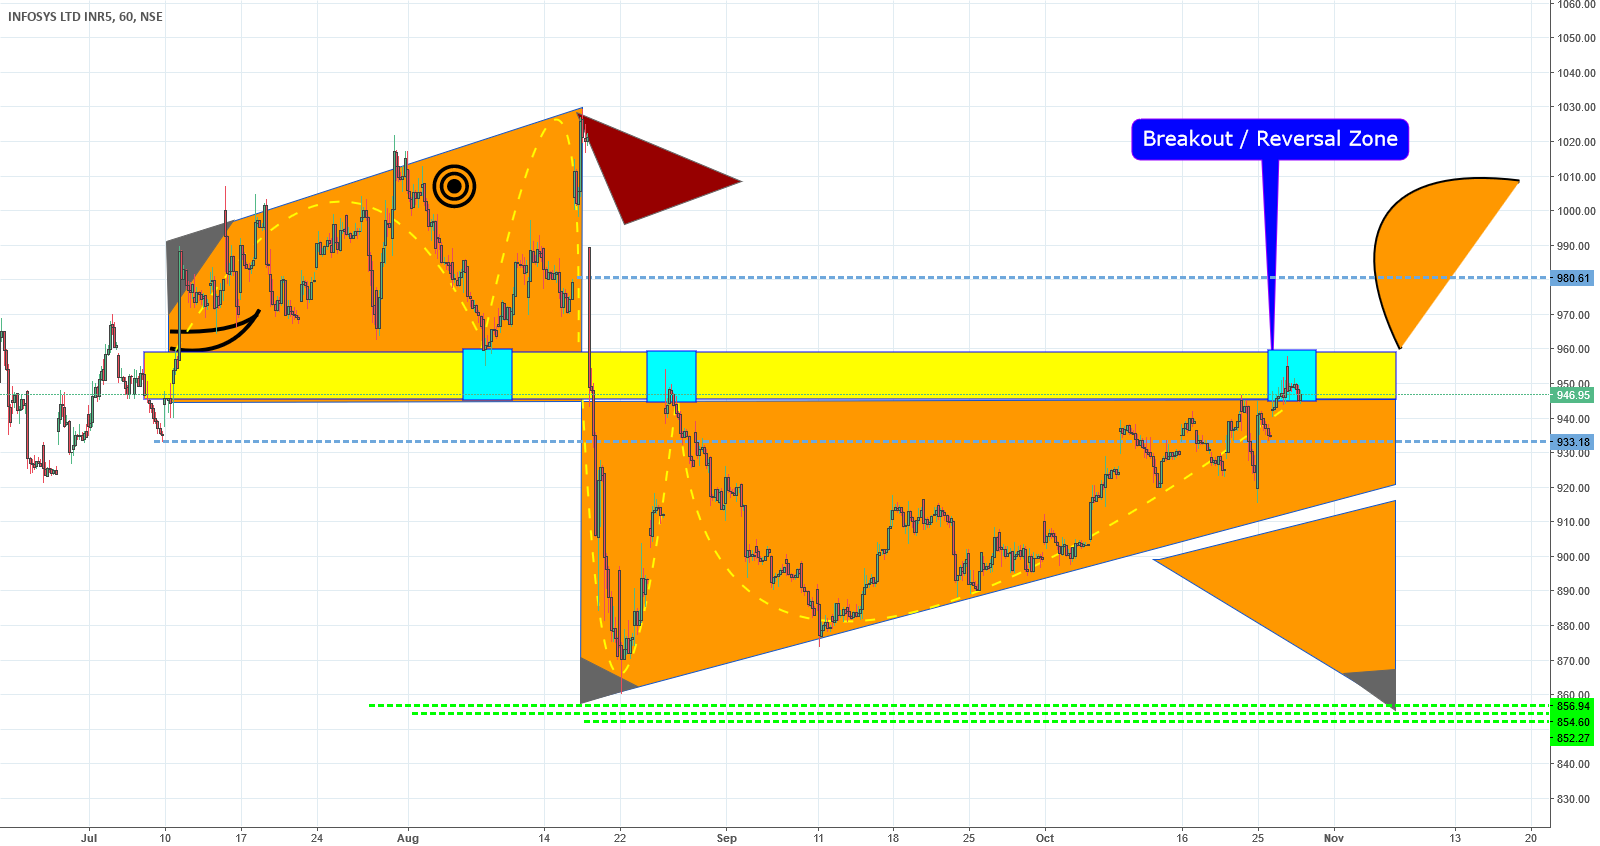 INFY Dog Breakout